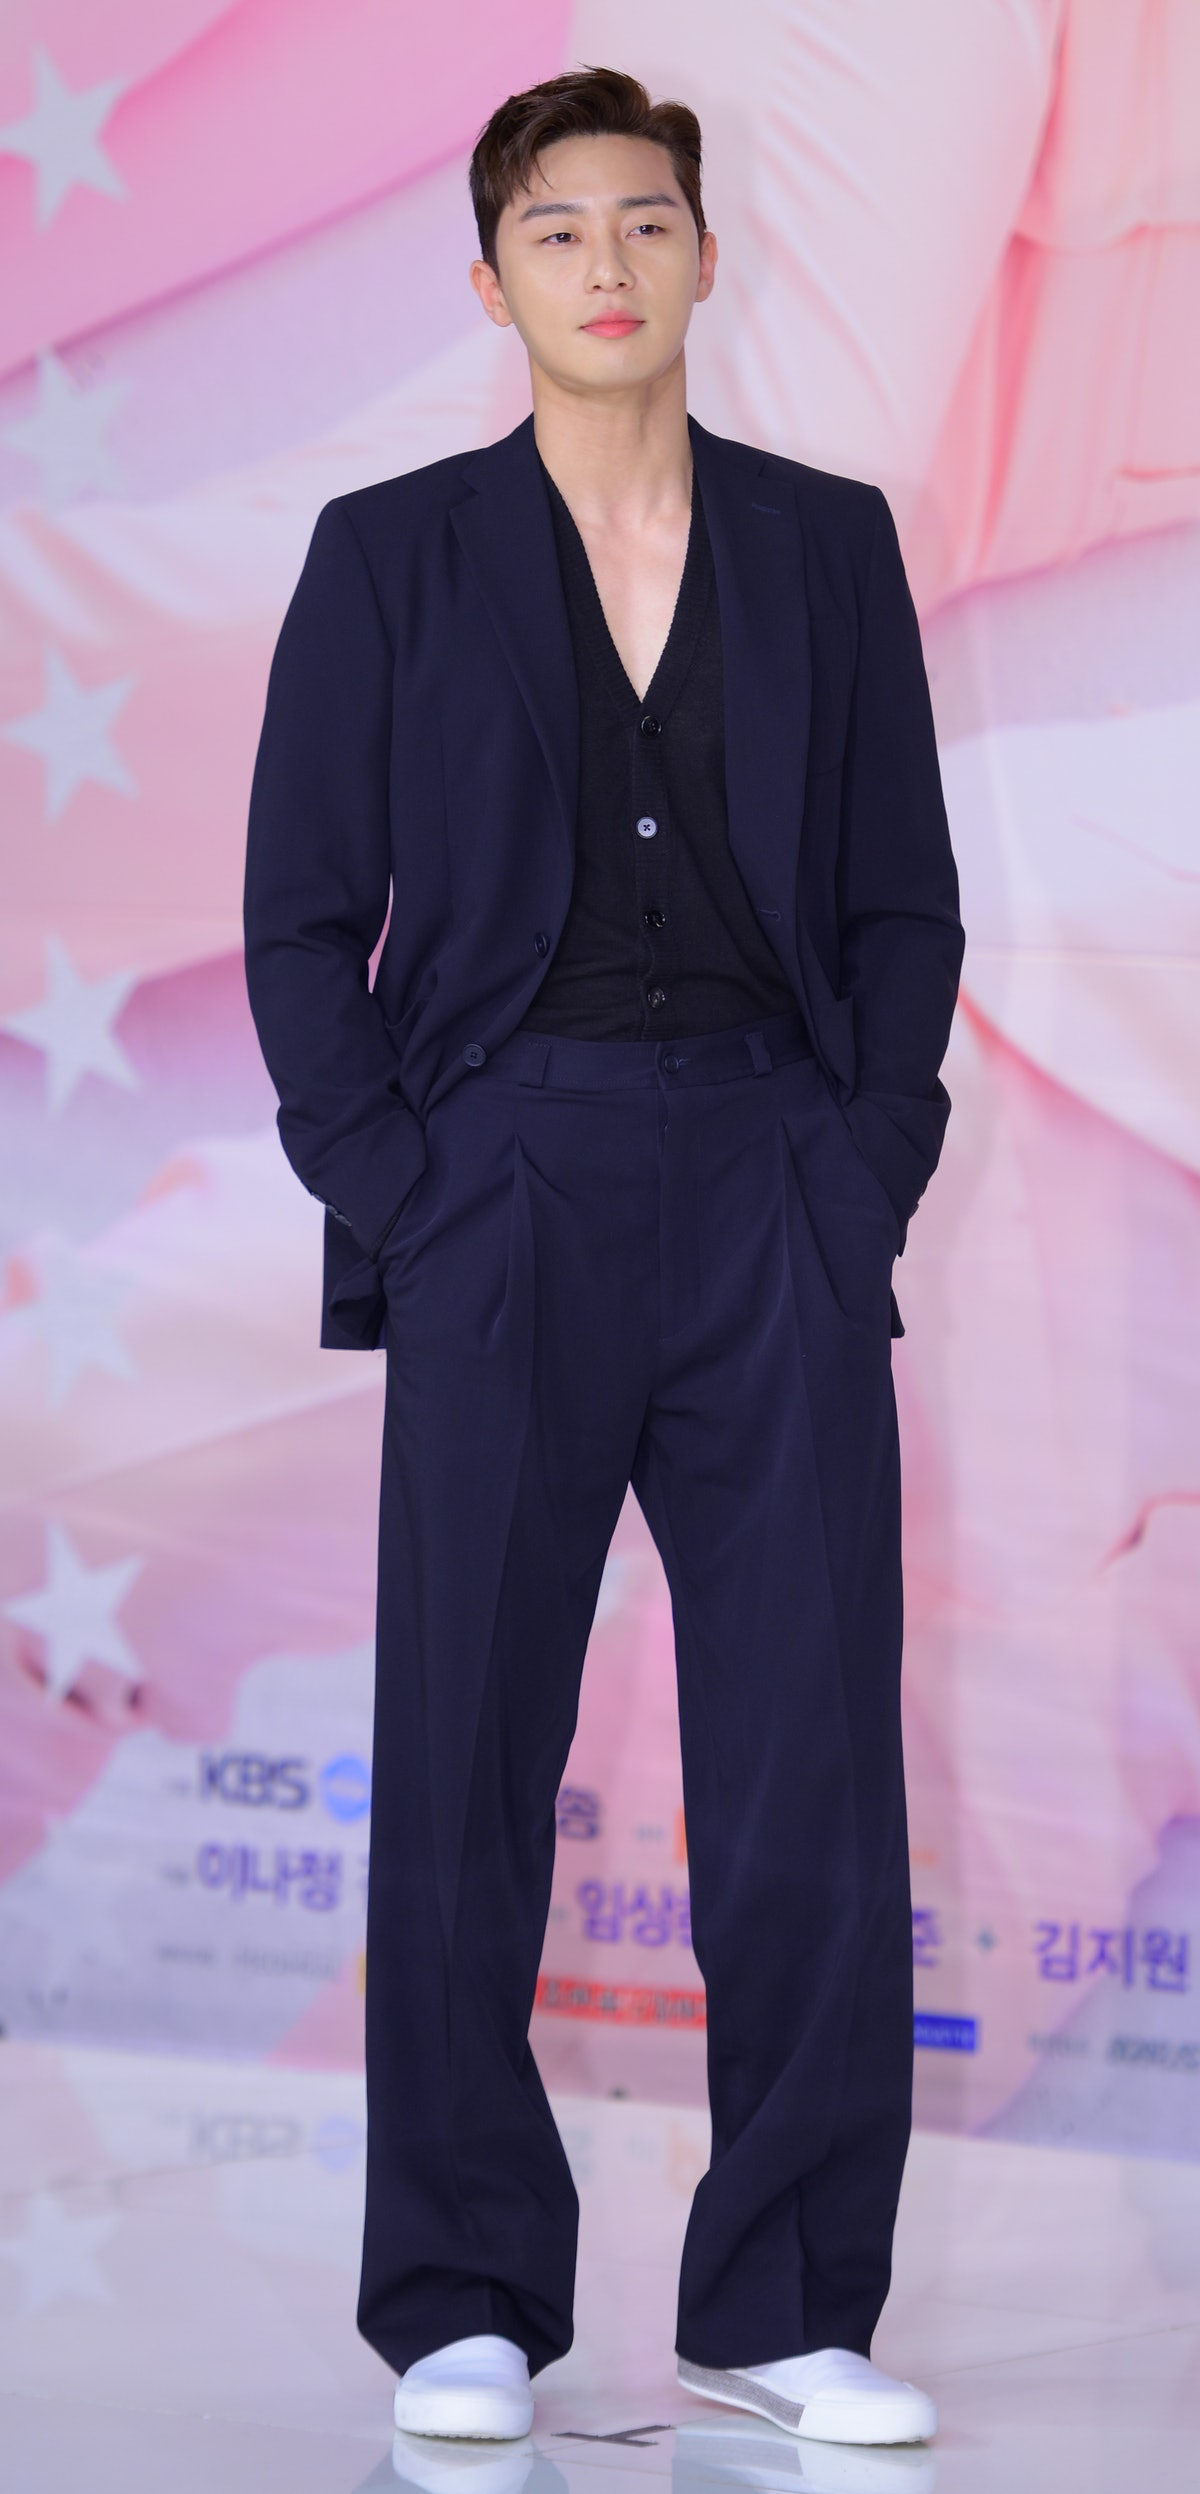 SEOUL, SOUTH KOREA - MAY 18: Actor Park Seo-Joon attends the press conference for KBS Drama 'Fight For My Way' at Times Square on May 18, 2017 in Seoul, South Korea. (Photo by The Chosunilbo JNS/Imazins via Getty Images)